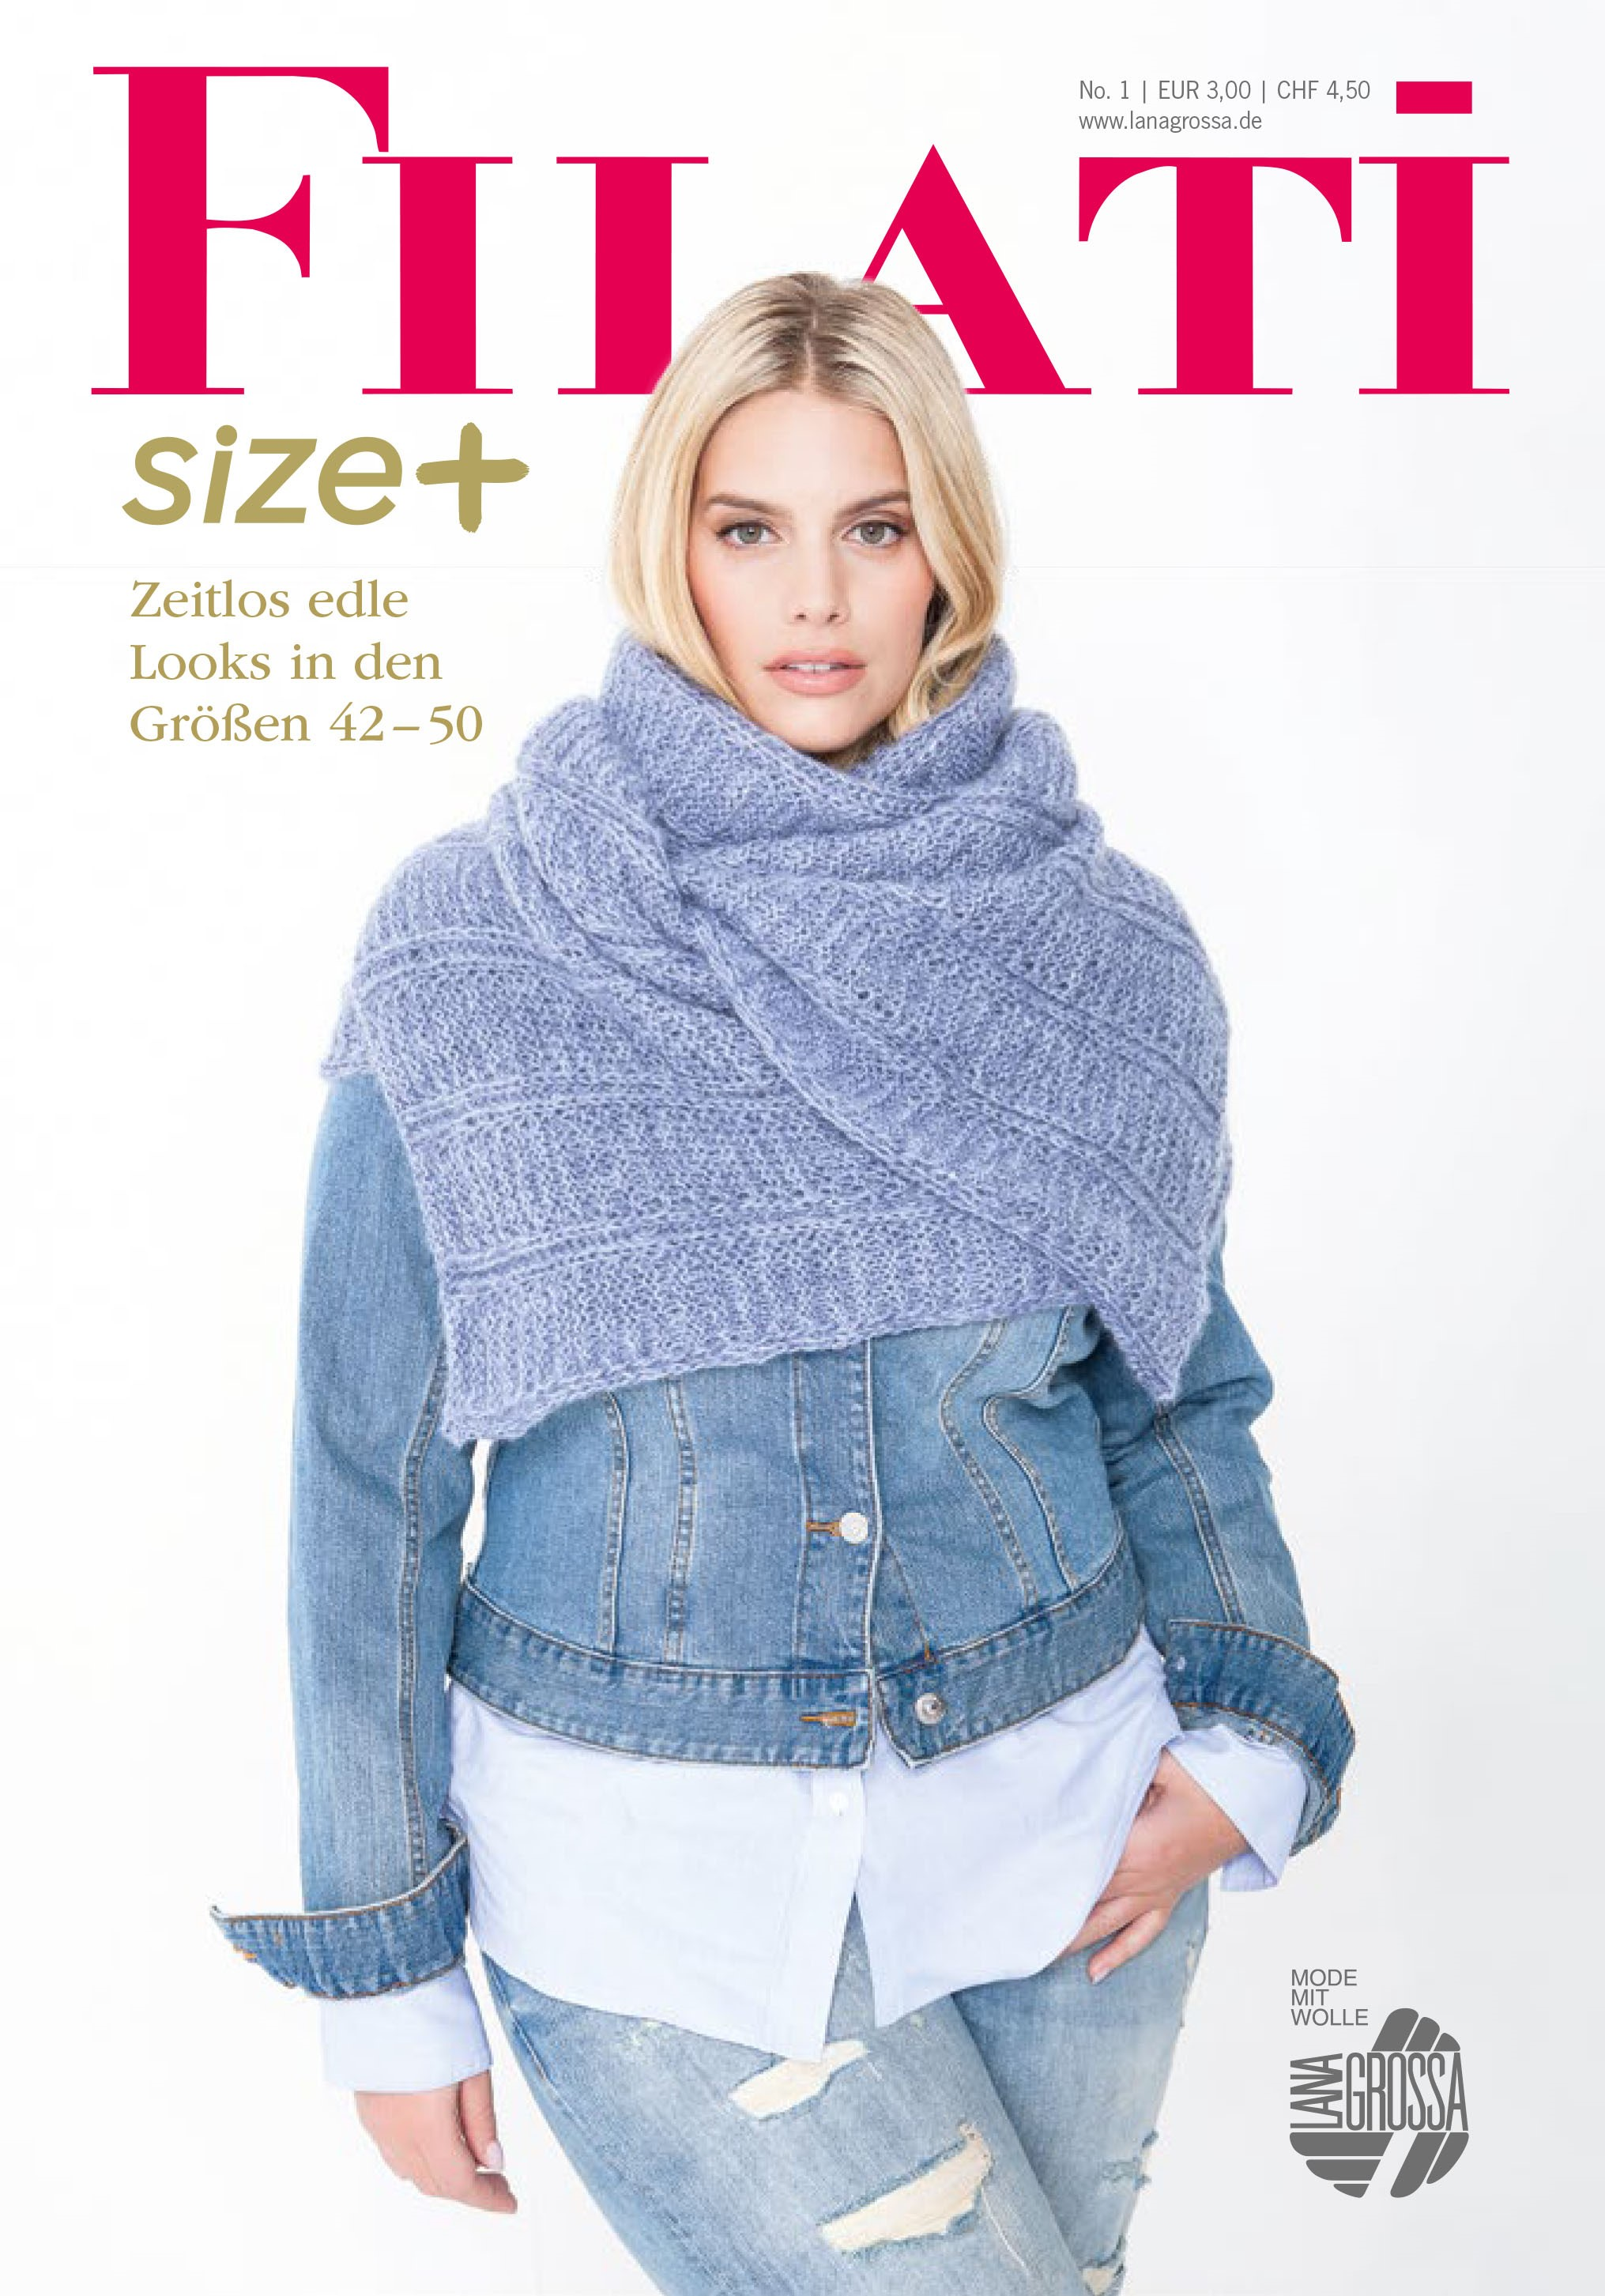 Lana Grossa FILATI Size Plus - German Edition